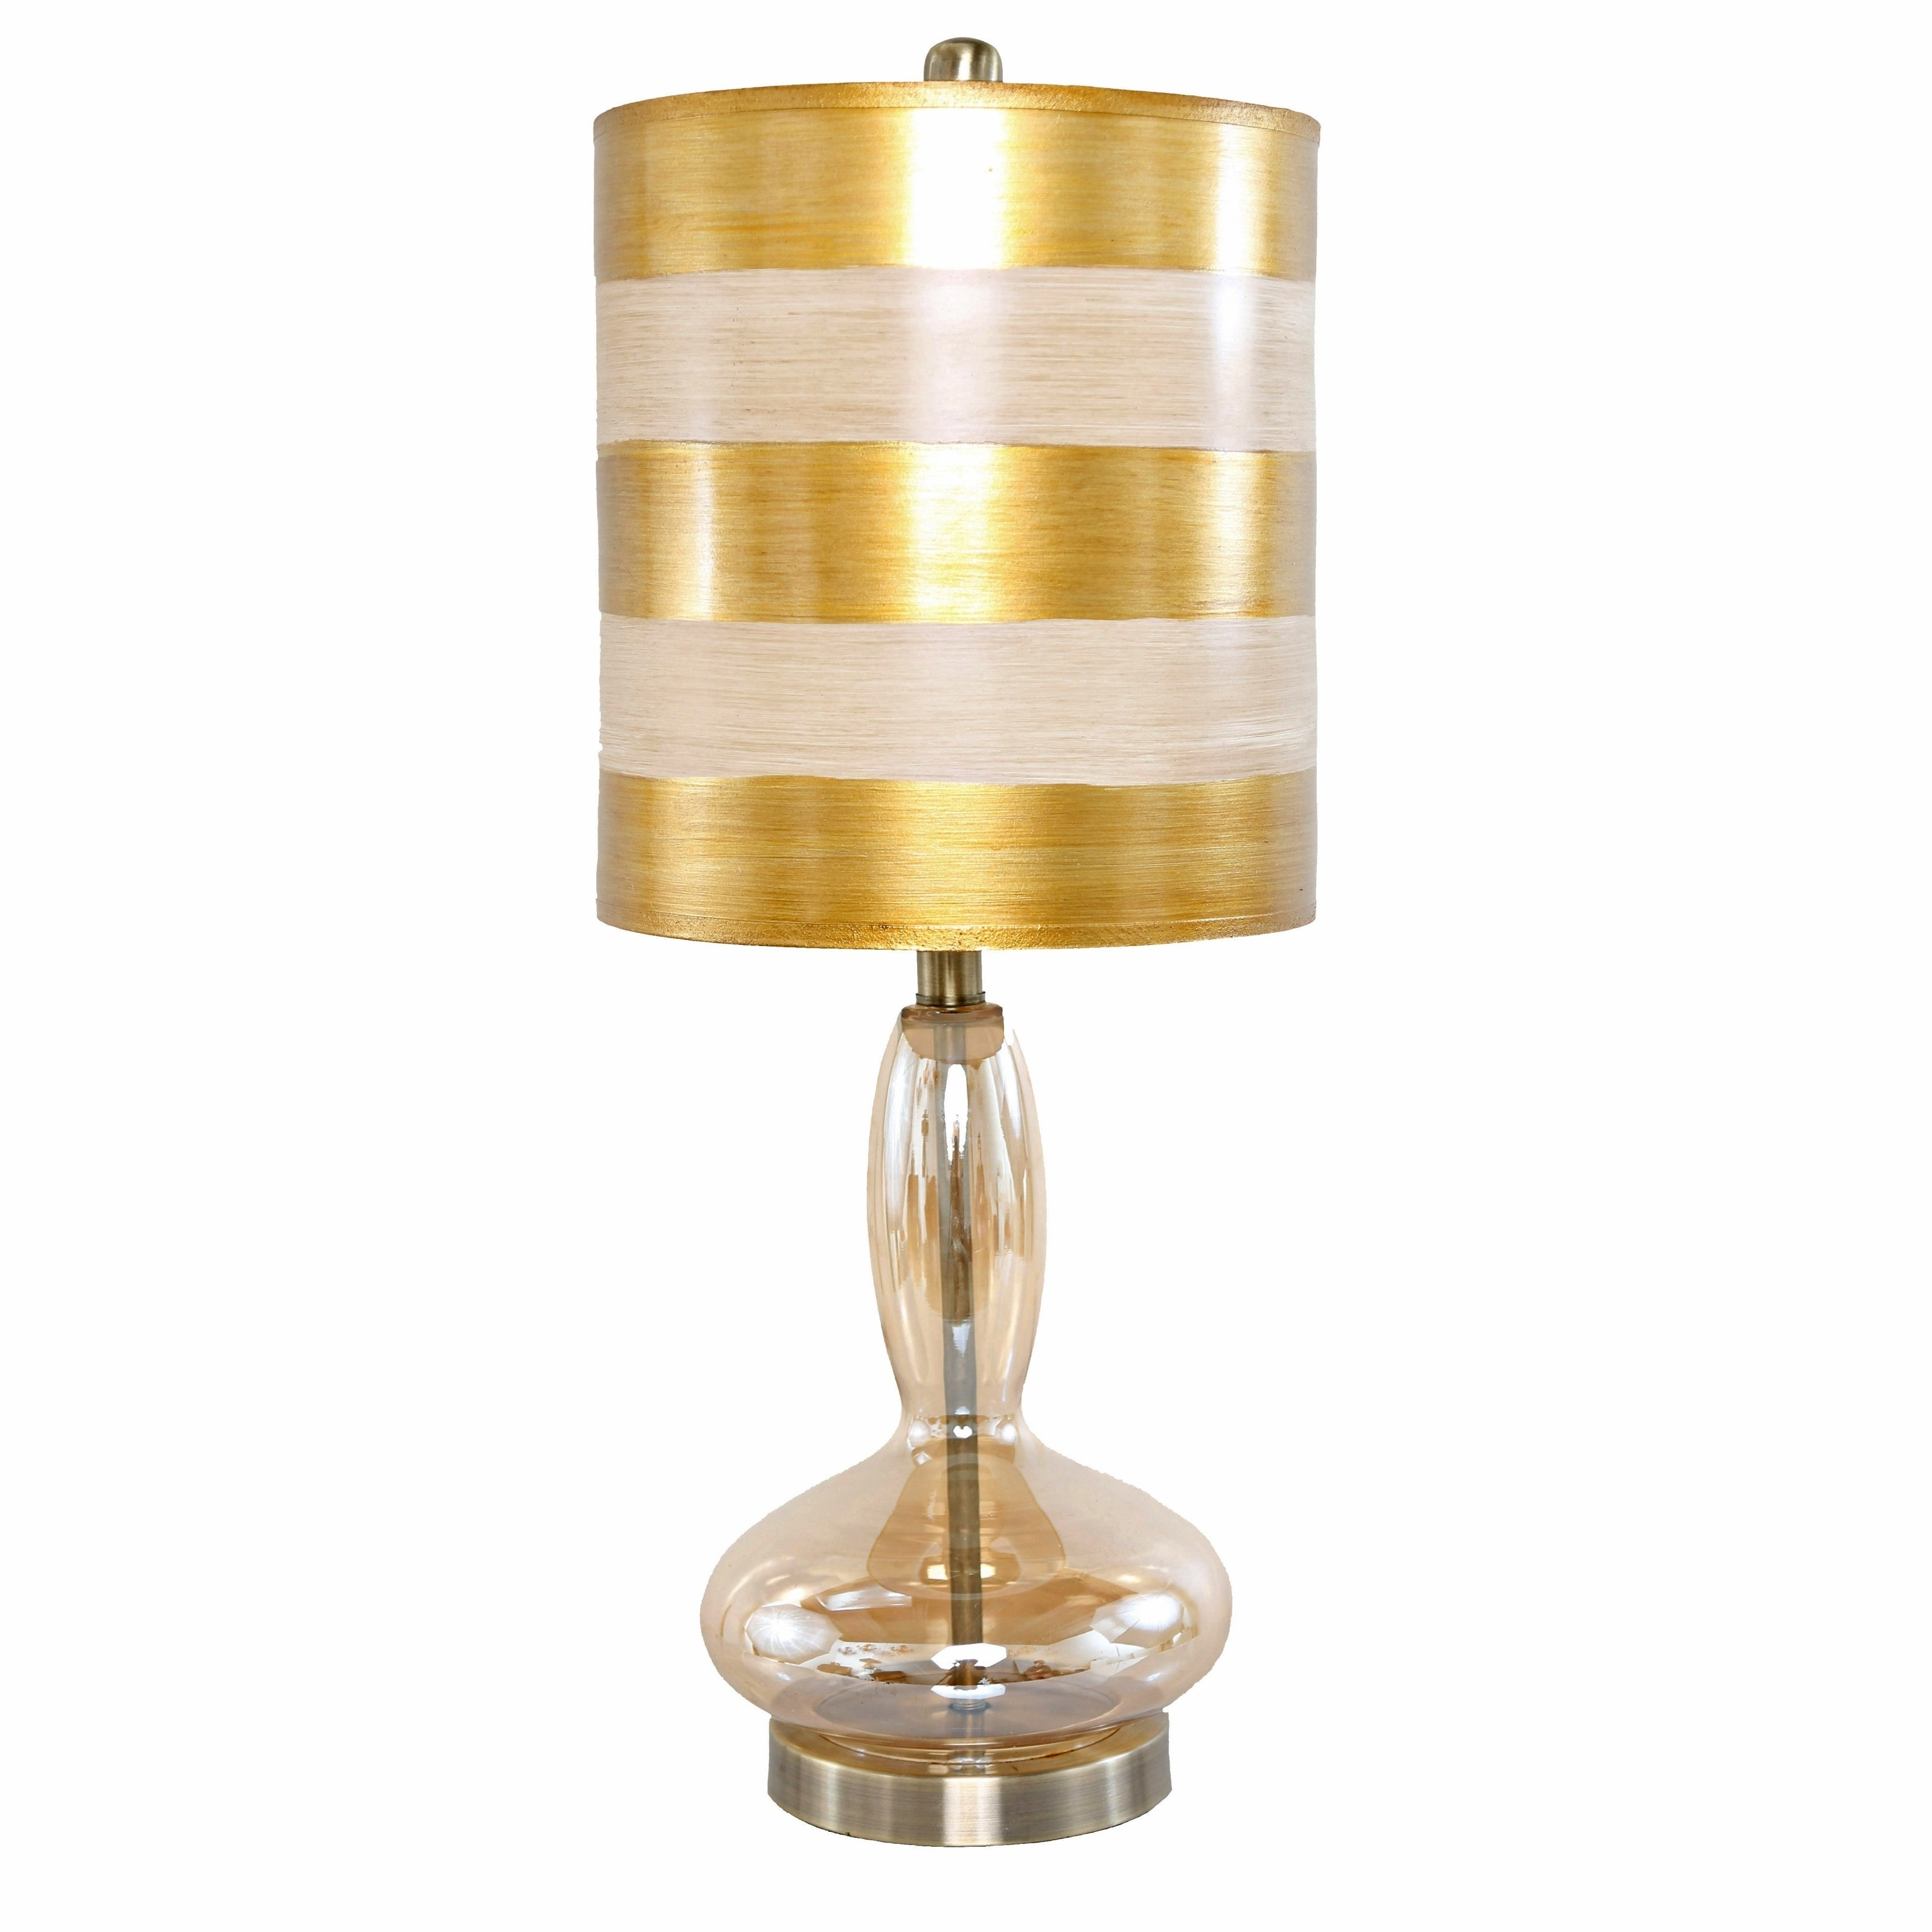 Silver Orchid Yorke Golden Handblown Curved Glass Base 24.5-inch high Art Deco Table Lamp